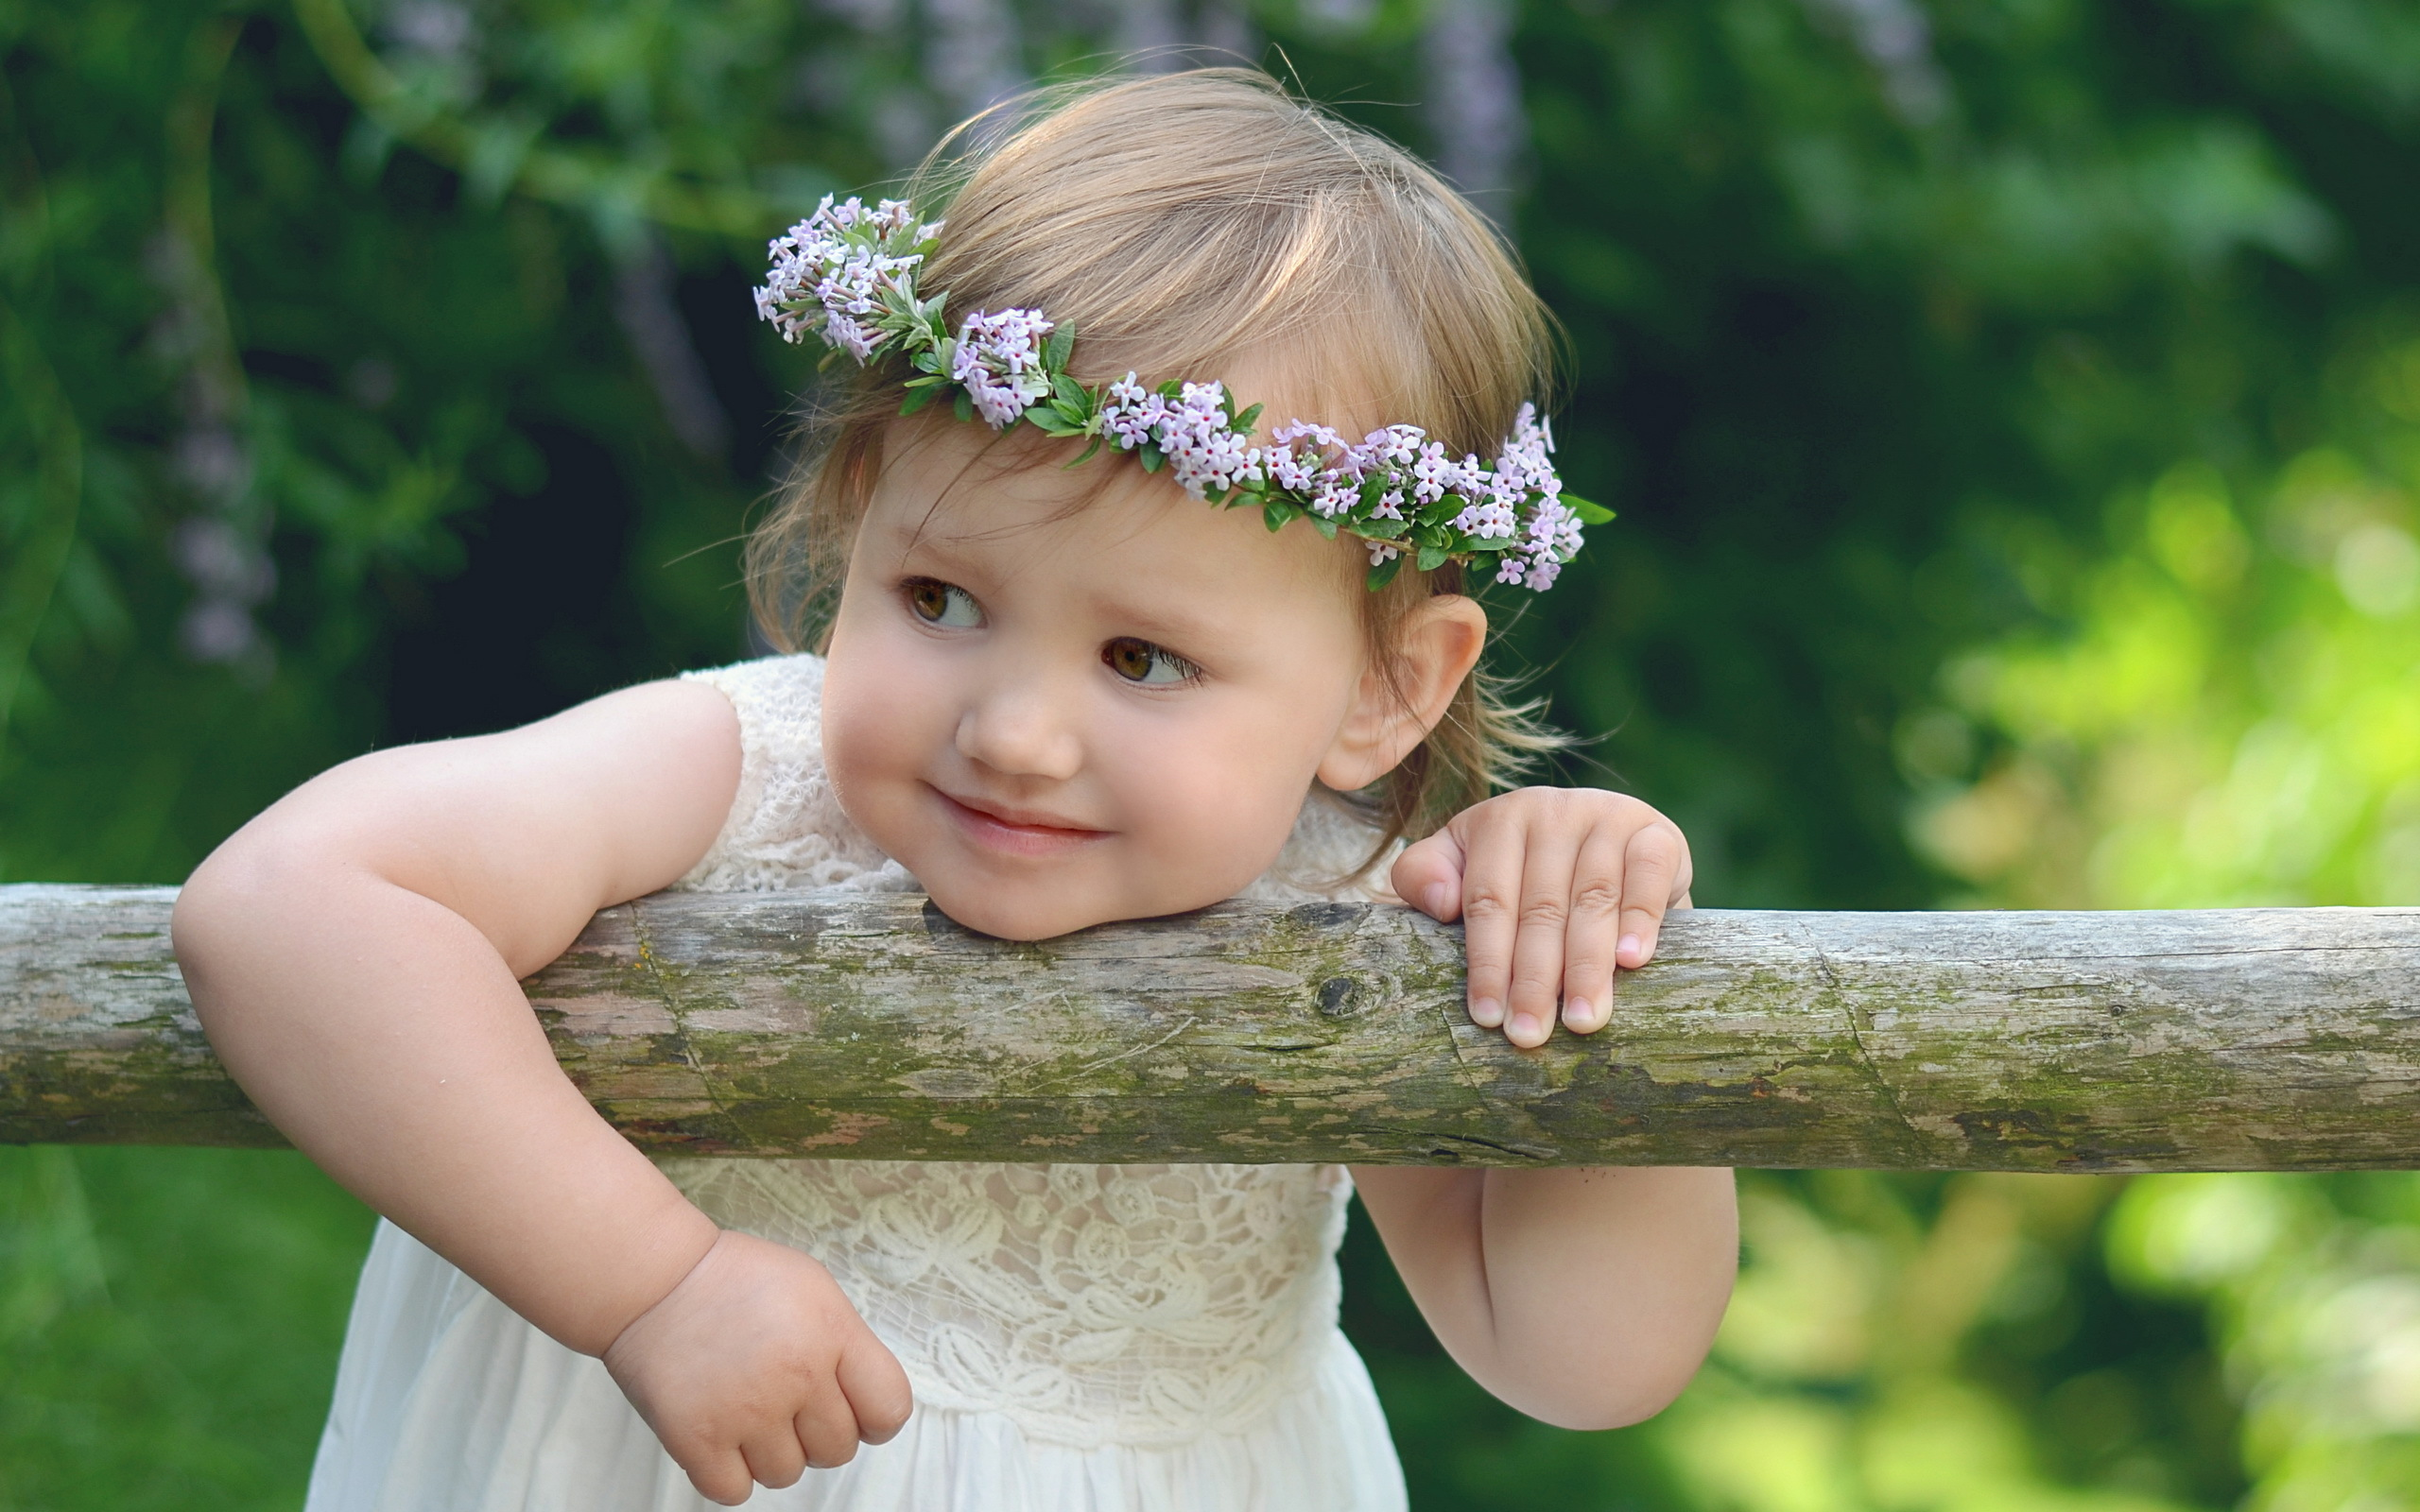 child Full HD Wallpaper and Background 2560x1600 ID:426006